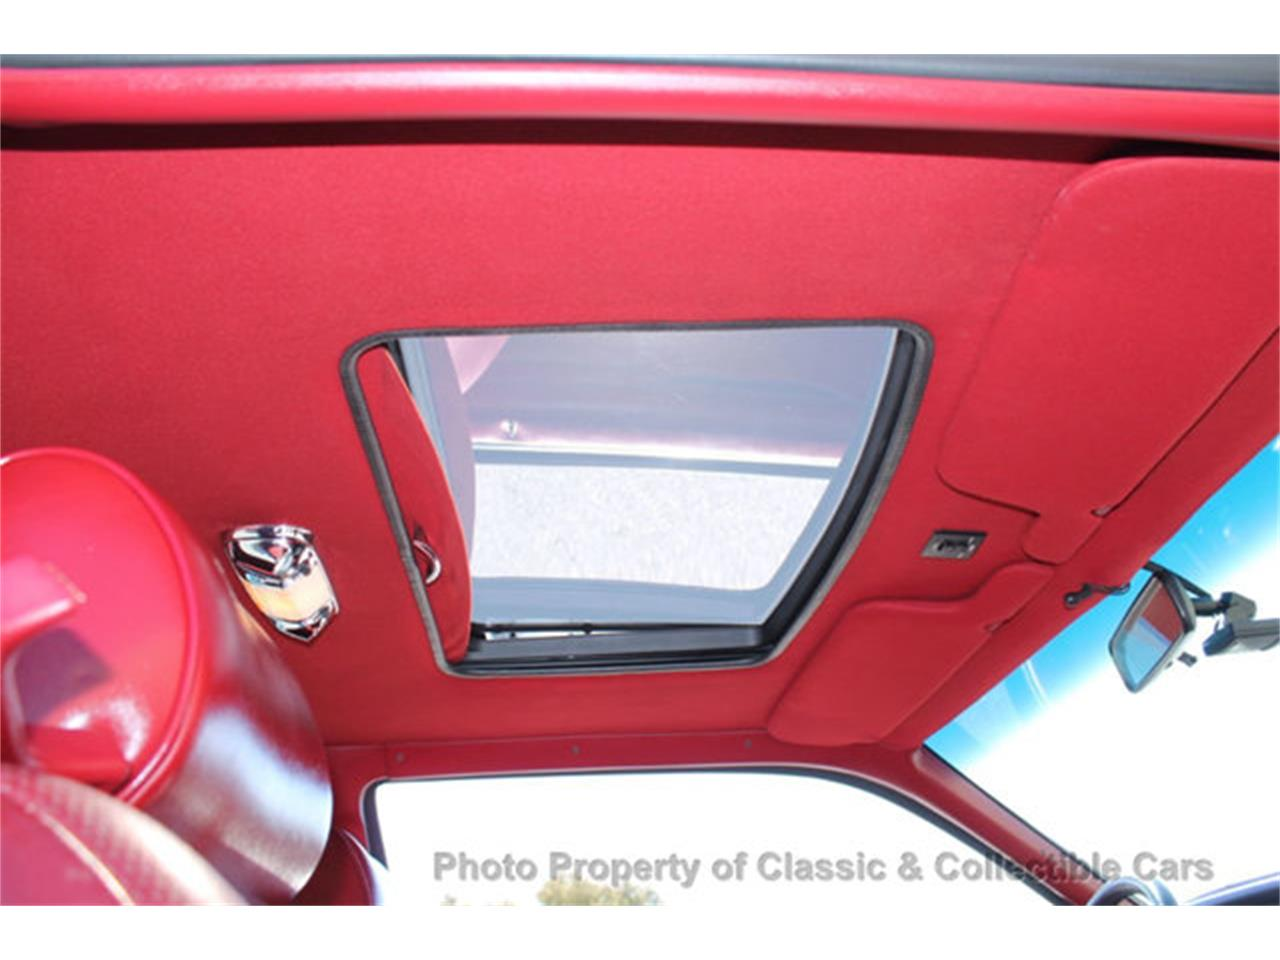 1988 Tiffany Classic for sale in Las Vegas, NV – photo 16